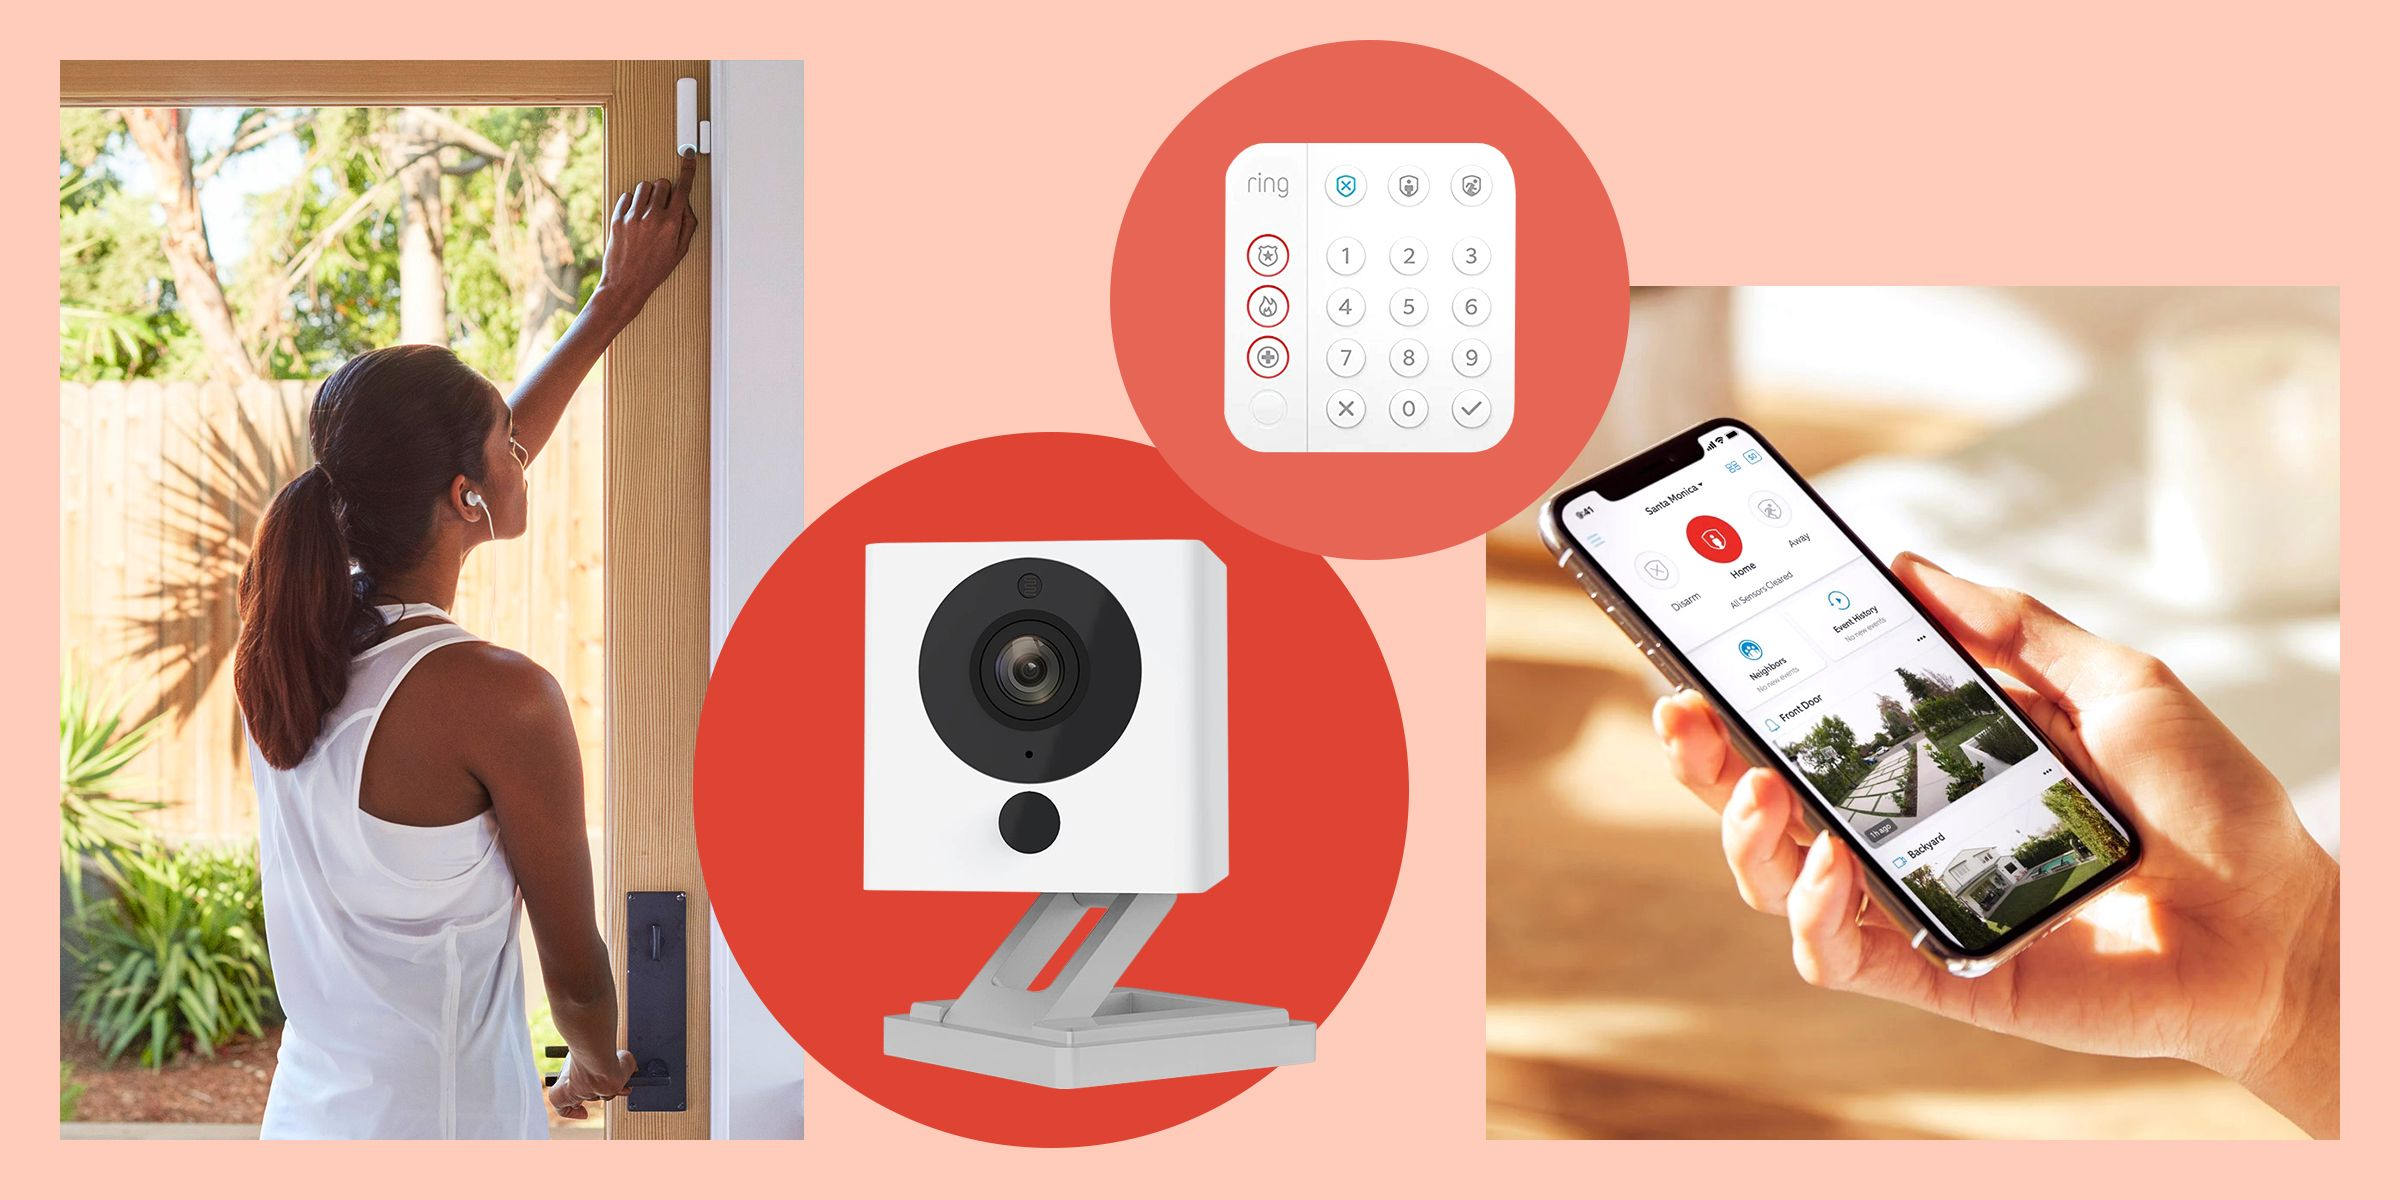 Here S How To Find The Best Security System For Your Home Best Security System Diy Security System Home Security Camera Systems